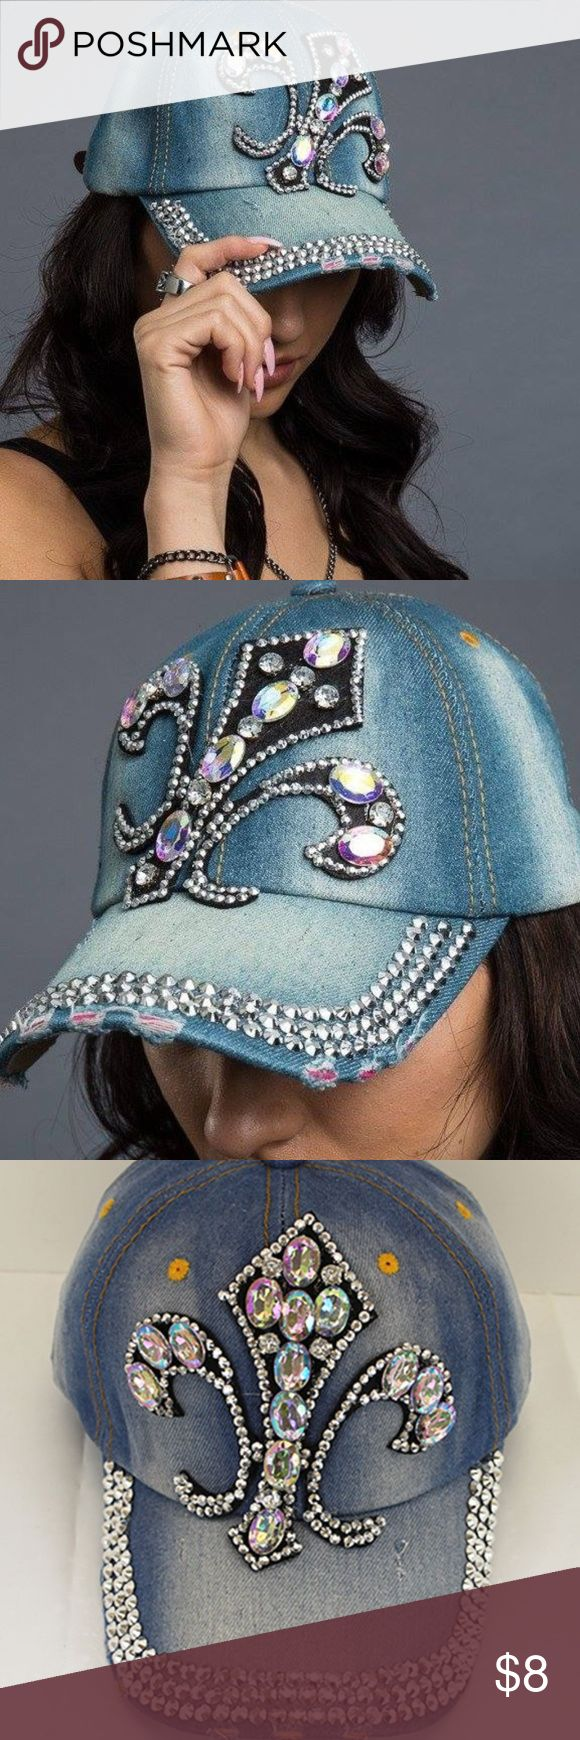 flur de lis cap  SALE LAST PRICE SKU: dm123 The crystal fleur de lis embellished baseball hat is made from 100% cotton for breathable all-day wear.  It features an adjustable Velcro closer for a secure fit. One size fits most New Orleans Accessories Hats